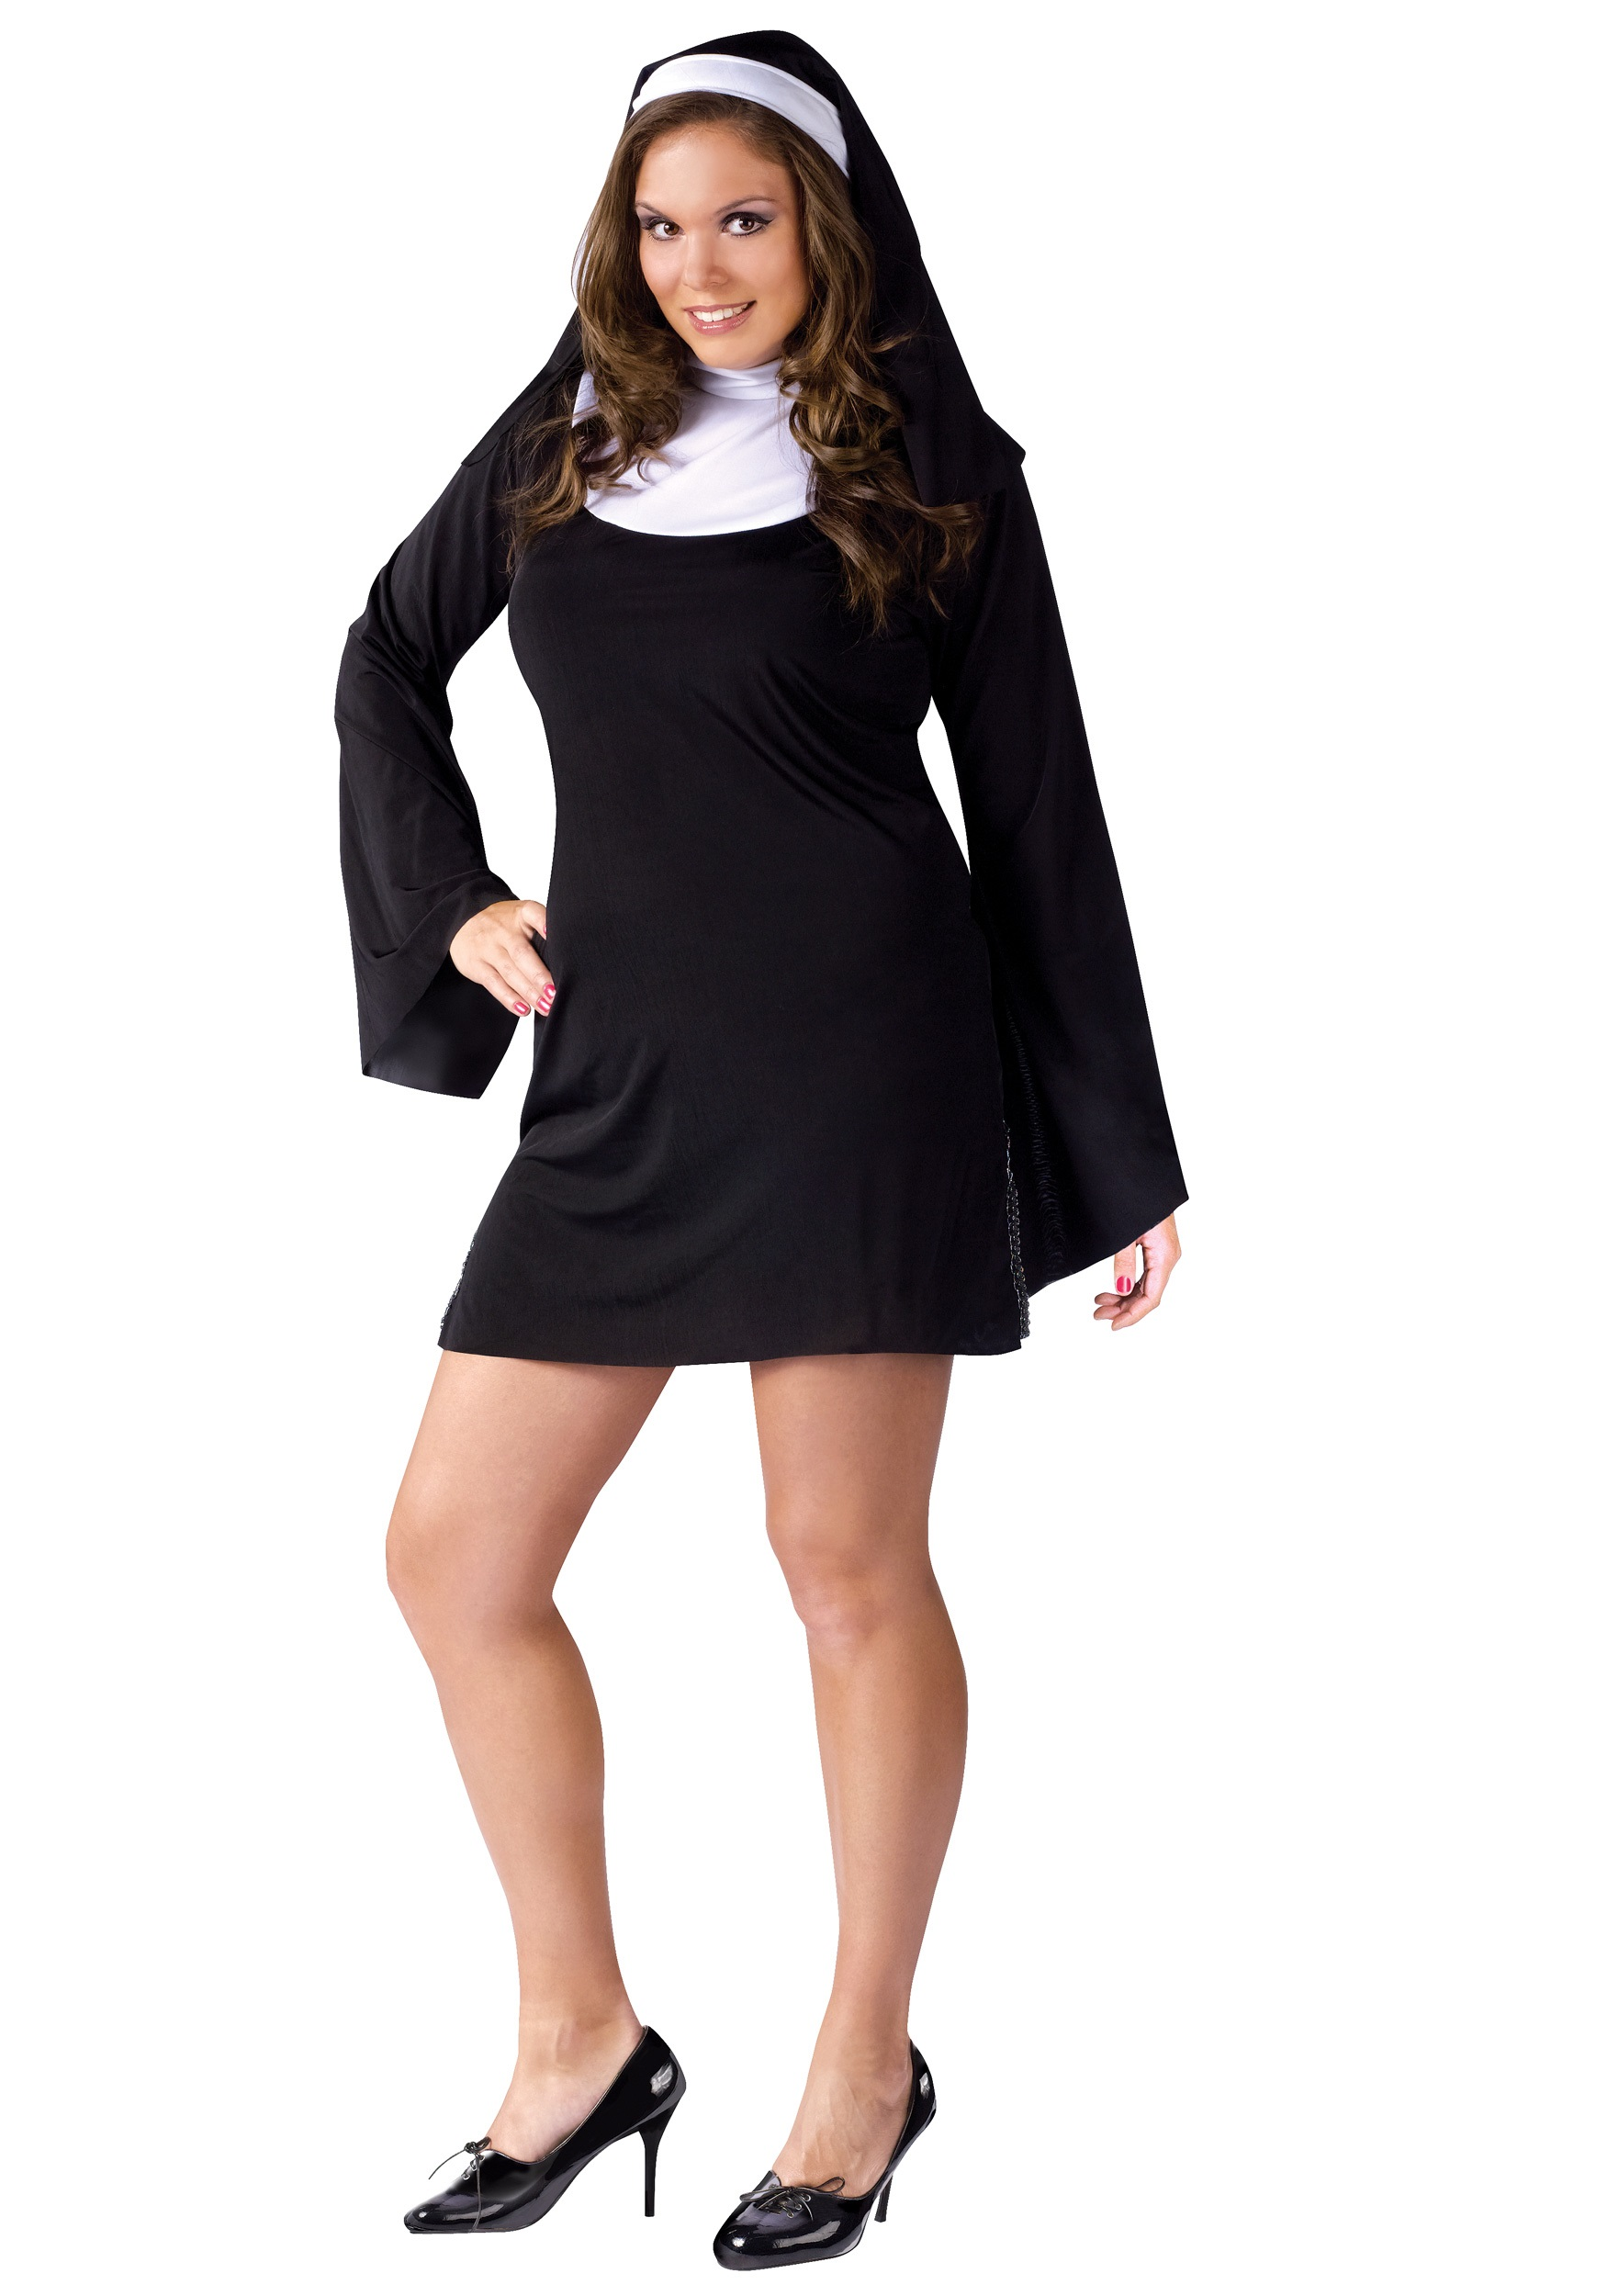 plus size naughty nun costume - Naughty Girl Halloween Costumes